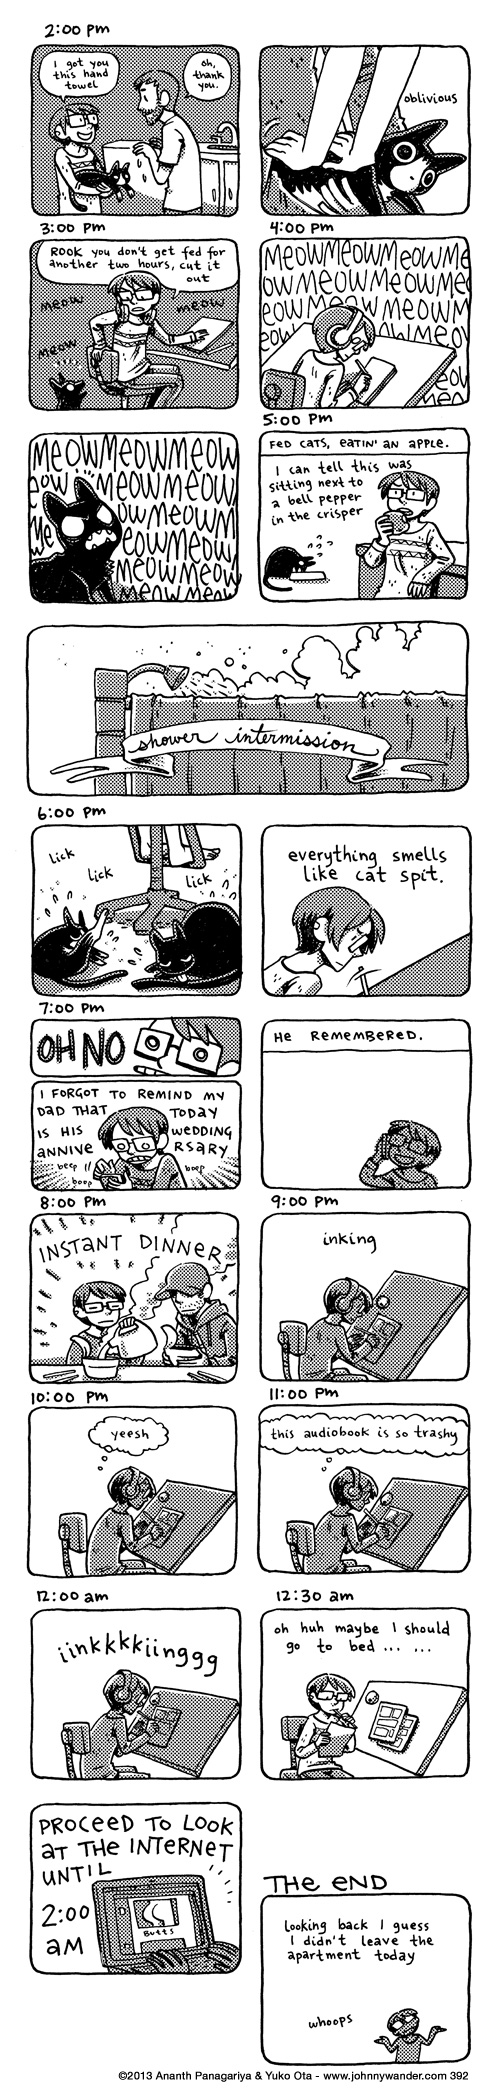 392 - hourly comics: february 2nd 2013